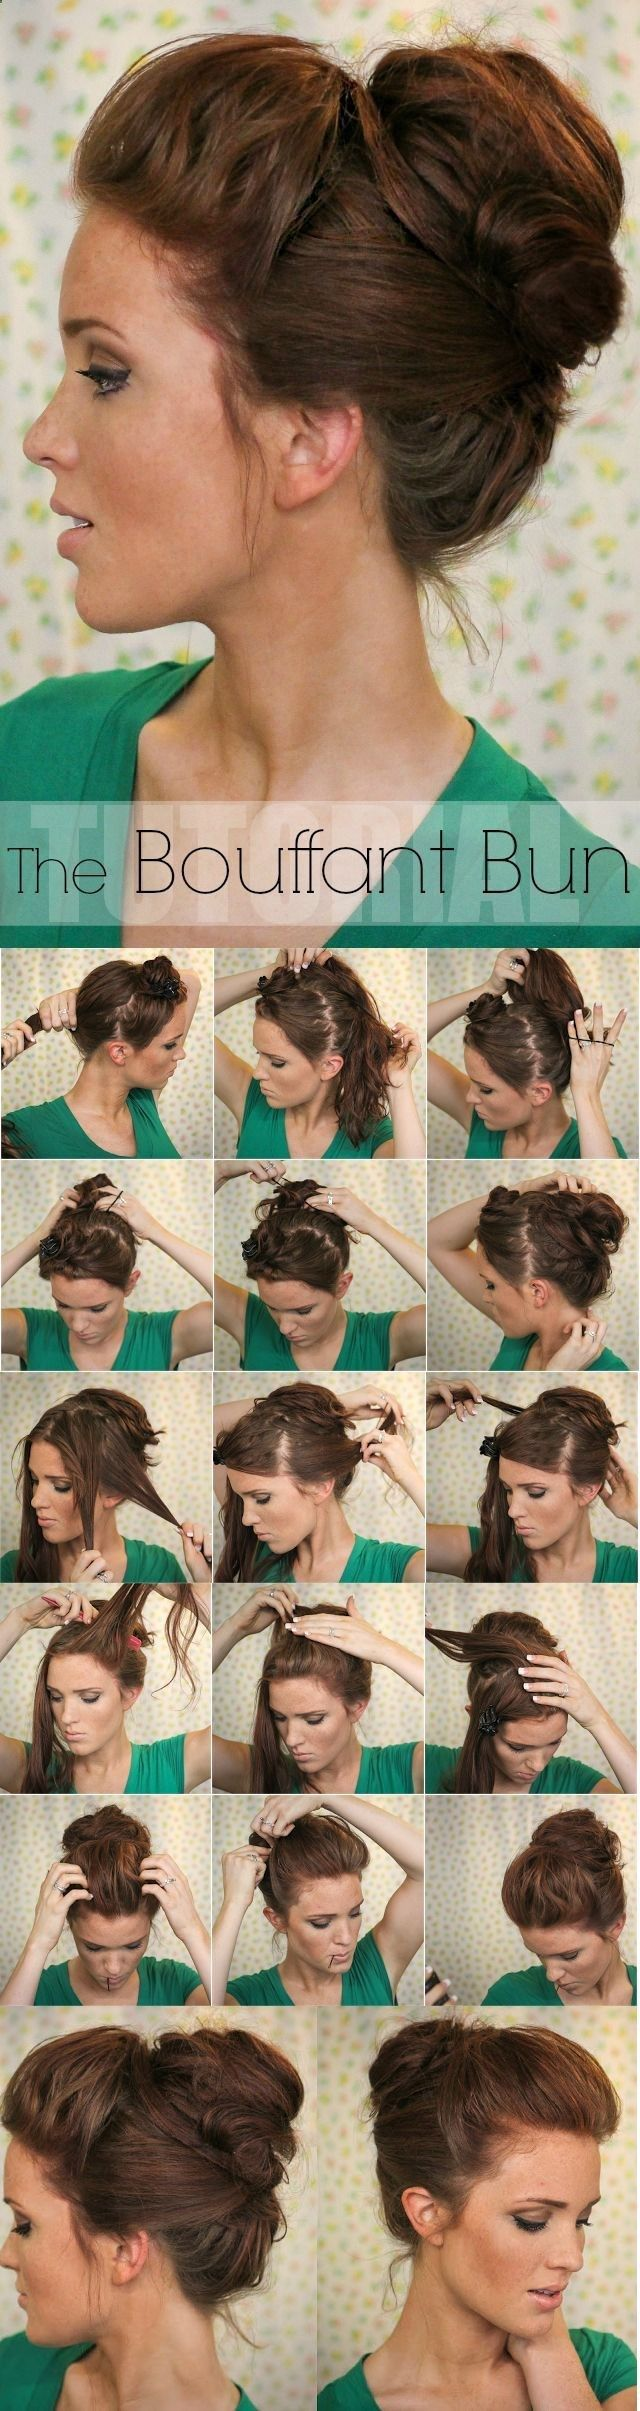 Knotted Bun Updo and Simple Bun Hairstyle Tutorials                                                                                                                                                                                 More